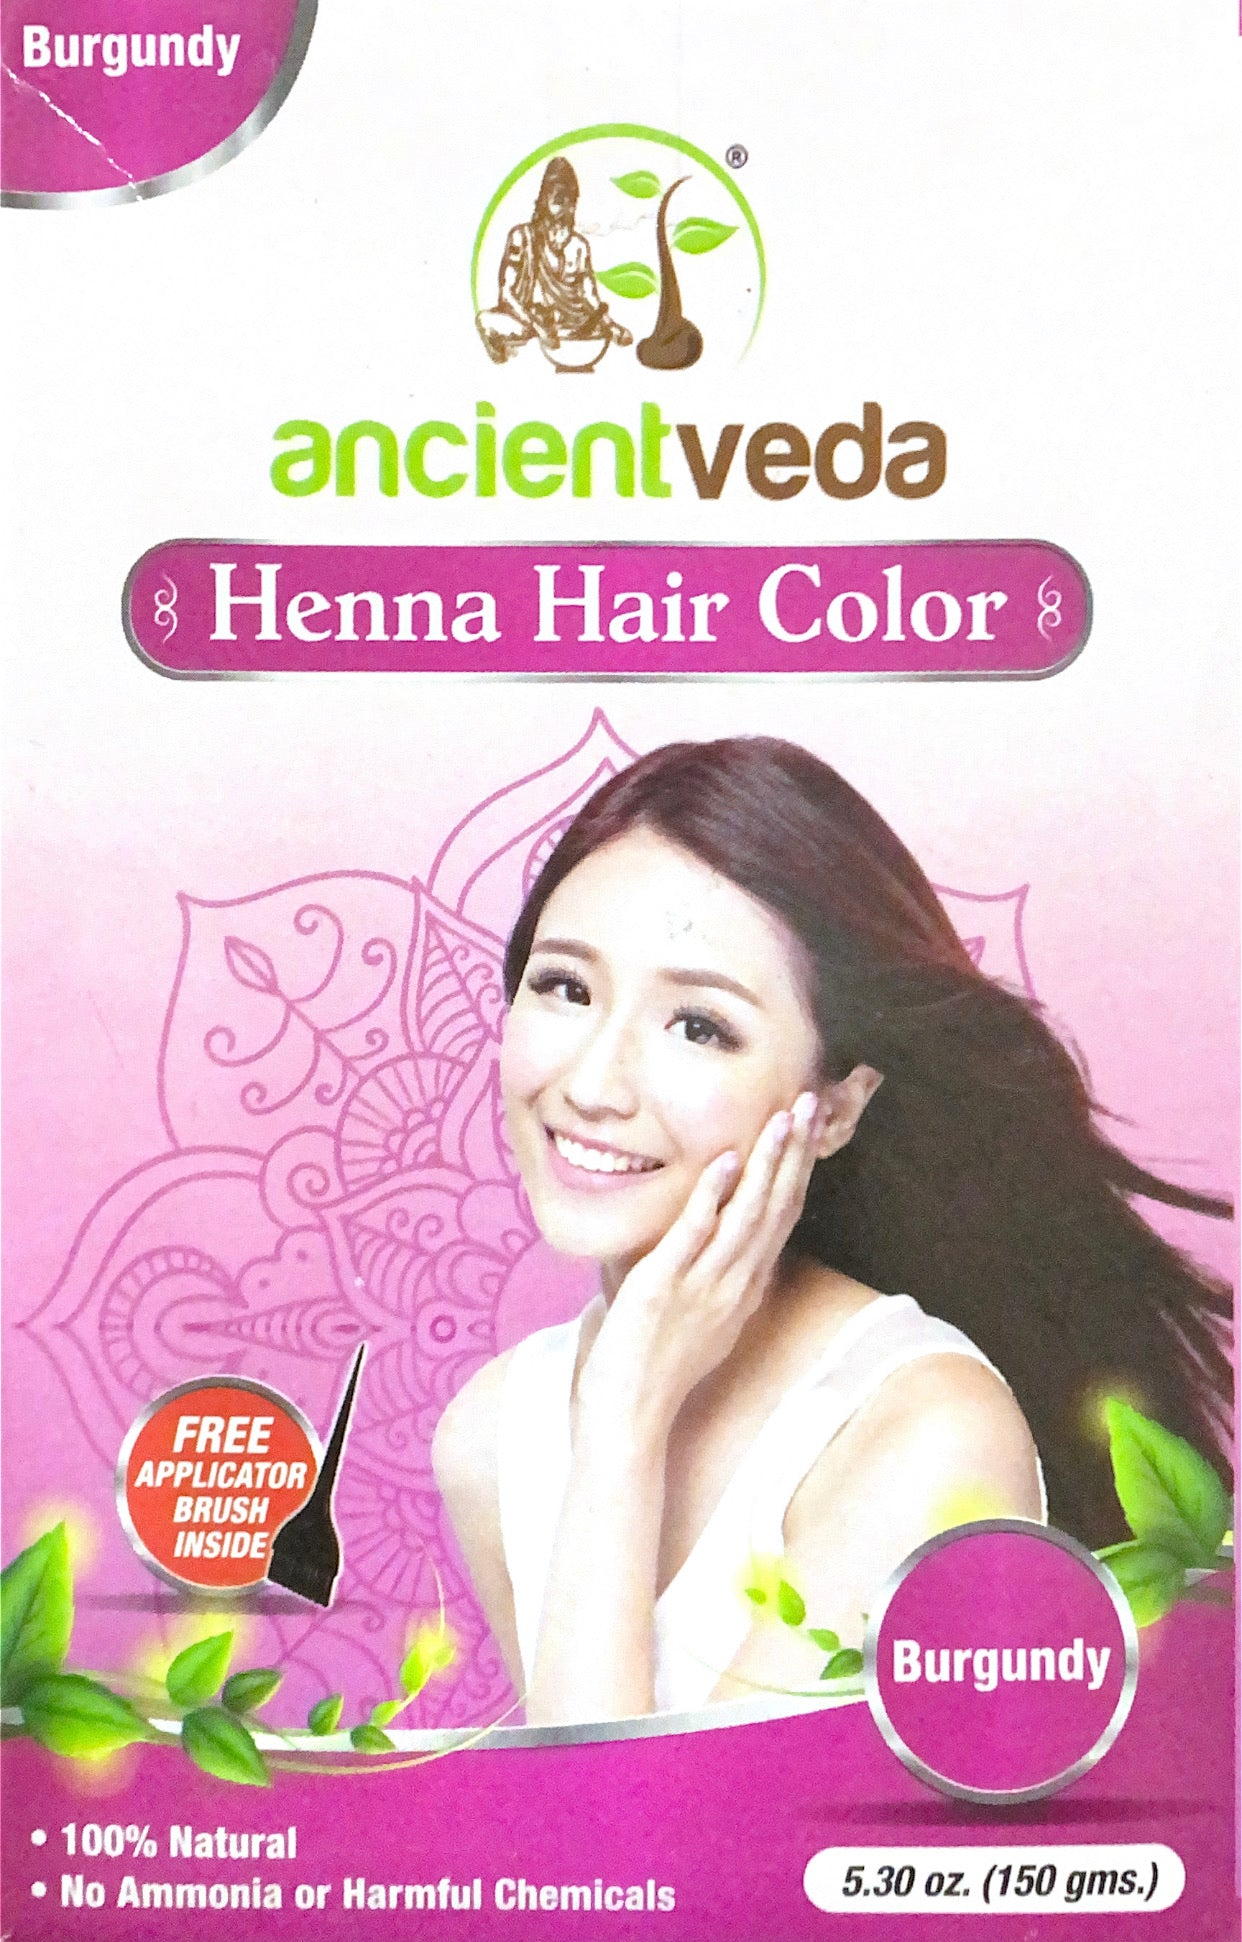 Henna Hair Color (Burgundy)